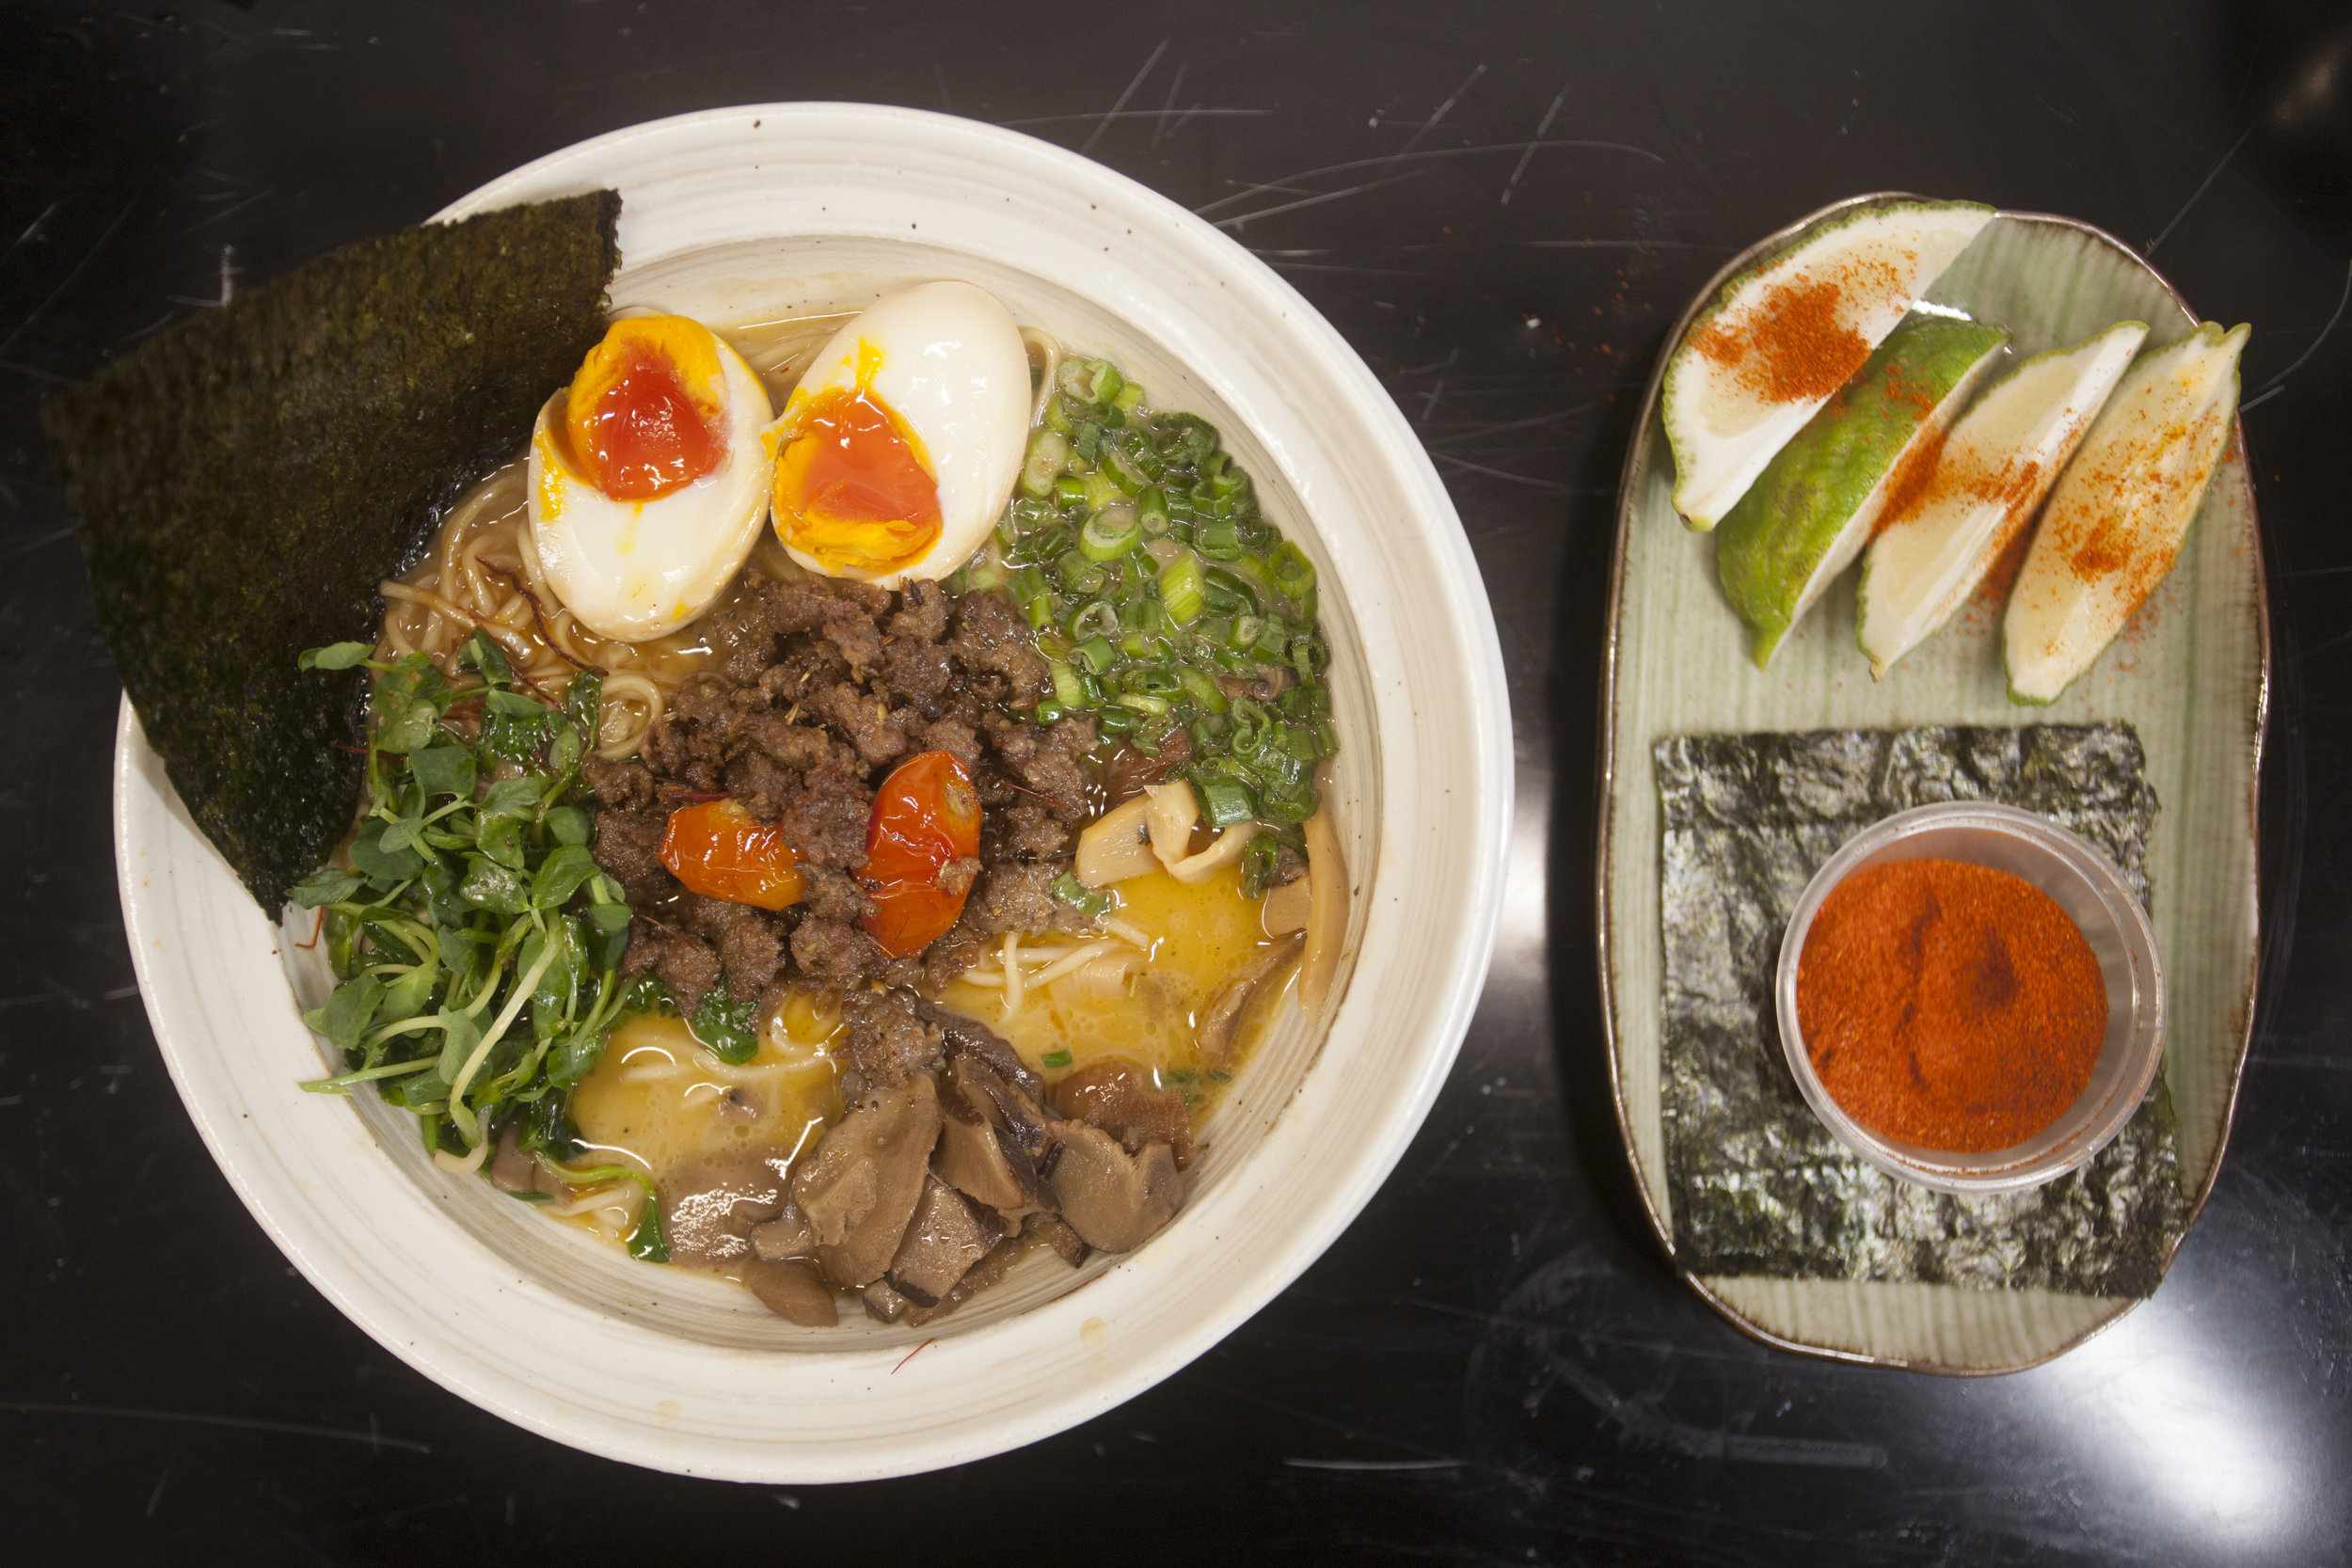 The lamb tantanmen ramen, inspired by our founder's Bangladeshi heritage, is the most recent addition to our menu this holiday season!